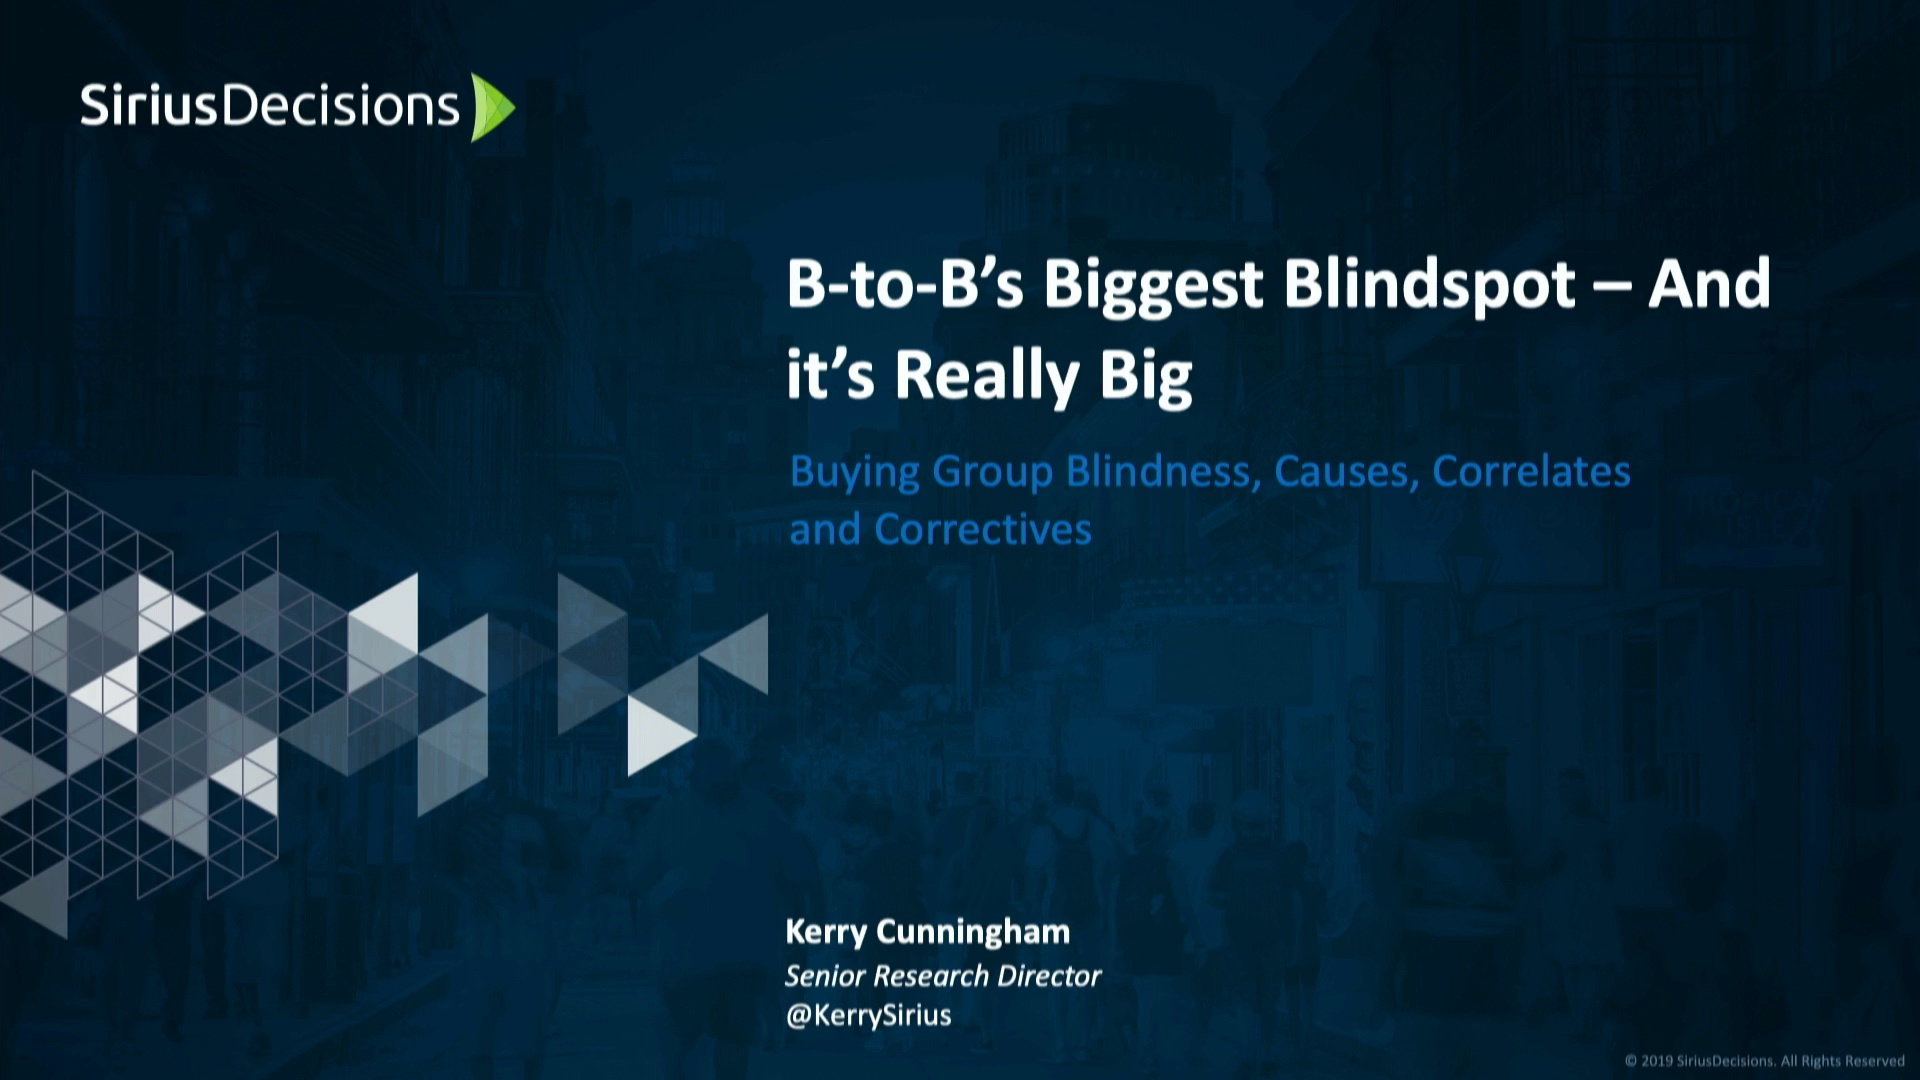 B to B's Biggest Blindspot, and It's Really Big - Kerry Cunningham